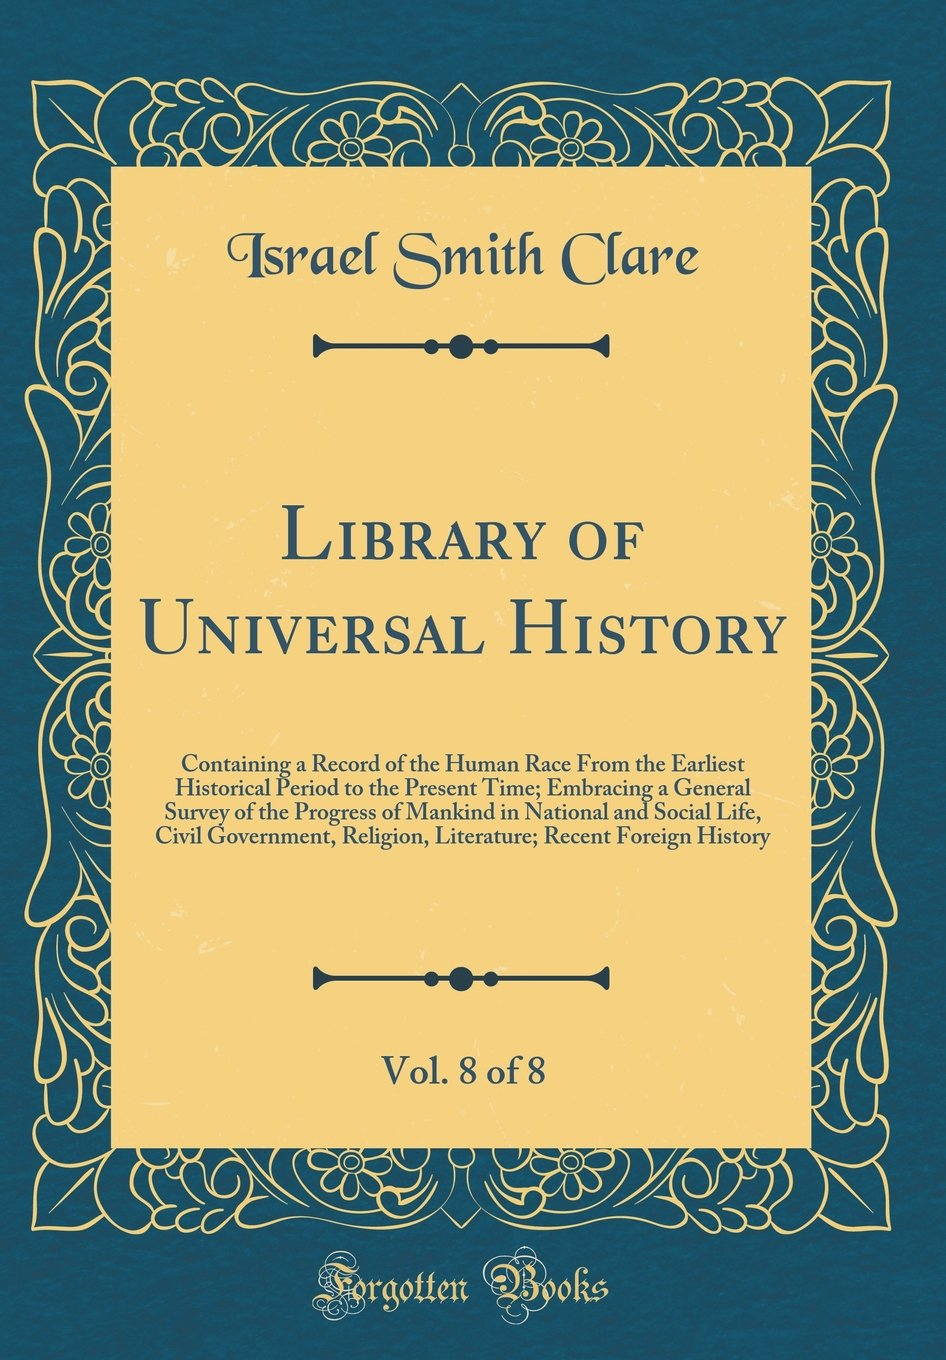 Download Library of Universal History, Vol. 8 of 8: Containing a Record of the Human Race from the Earliest Historical Period to the Present Time; Embracing a ... Life, Civil Government, Religion, Litera PDF